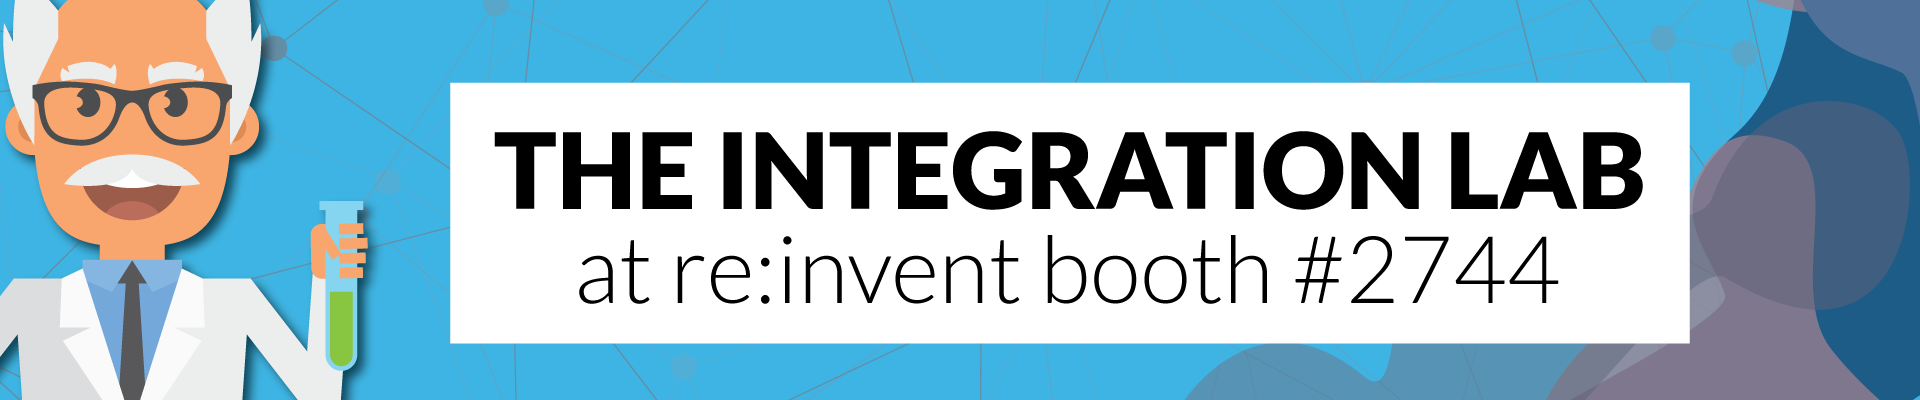 integration-lab-banner2.png